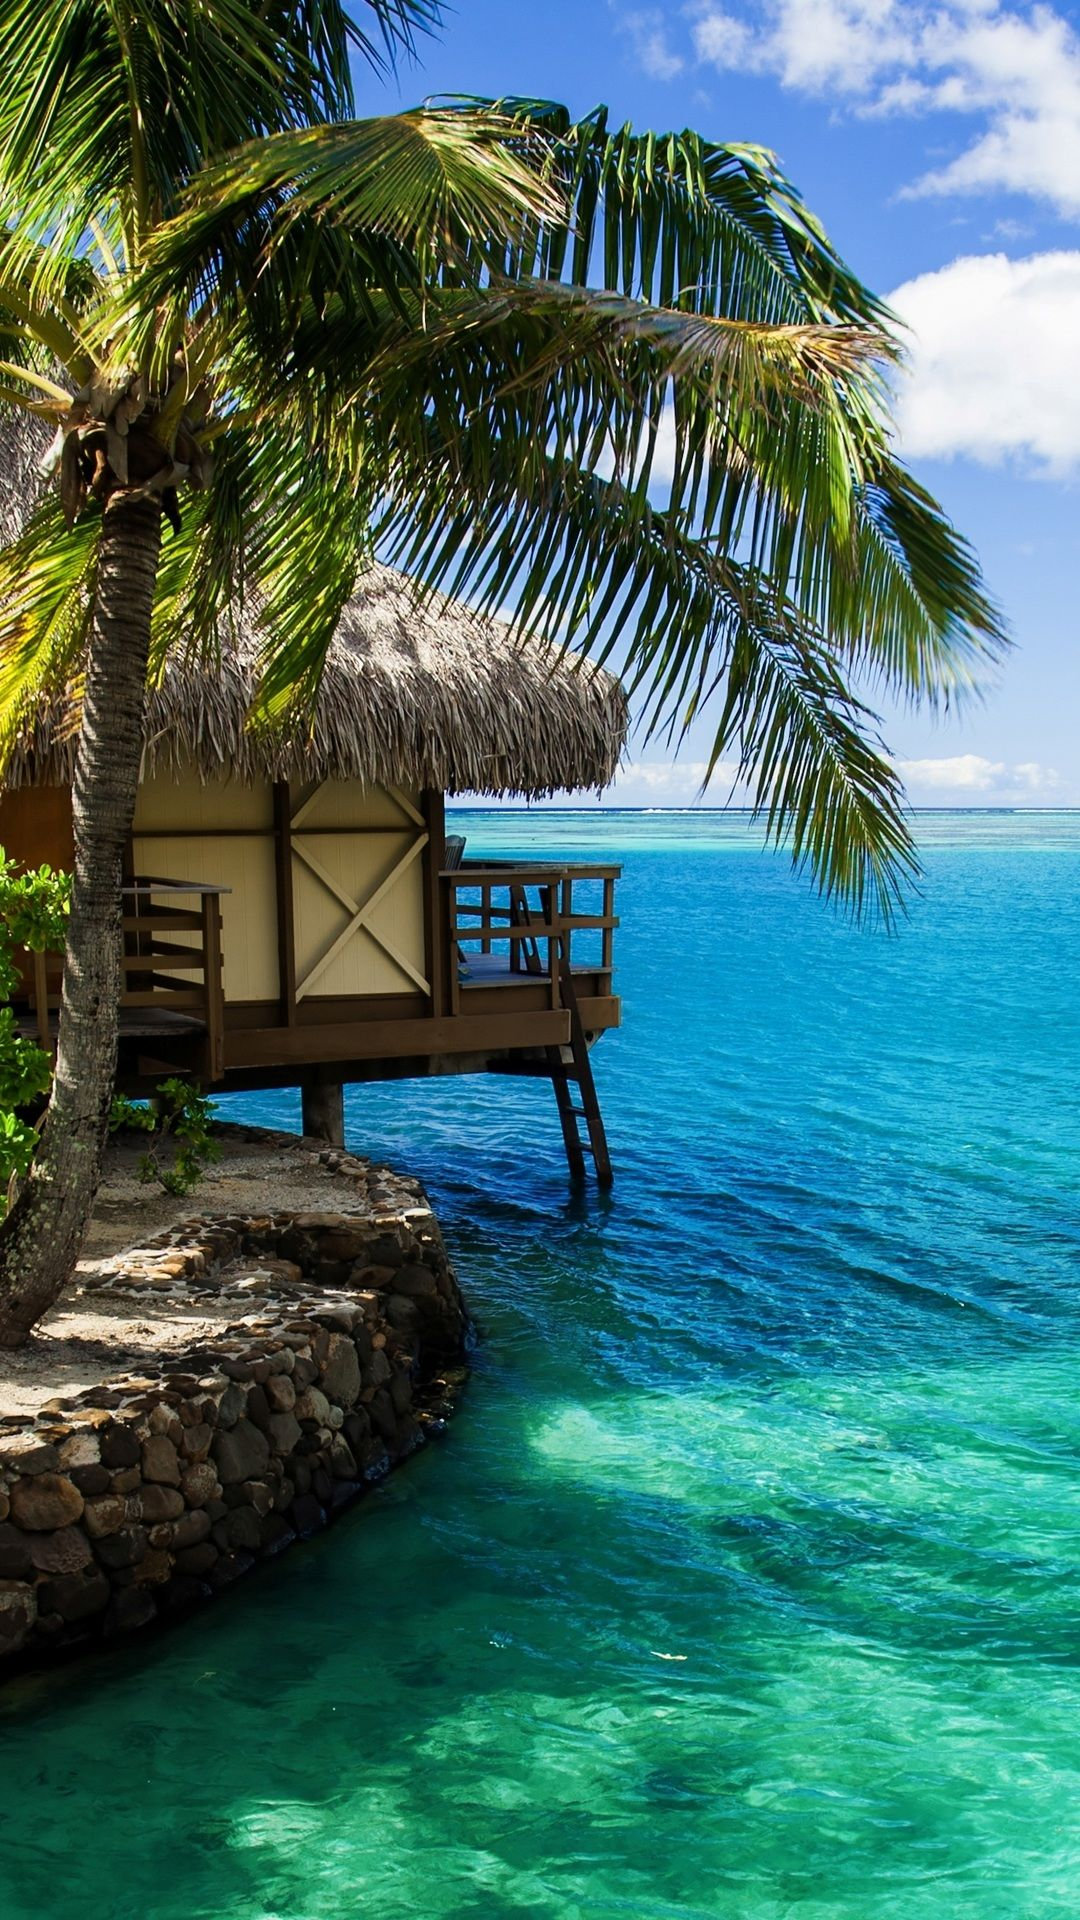 The Sea And Bungalows Pictures